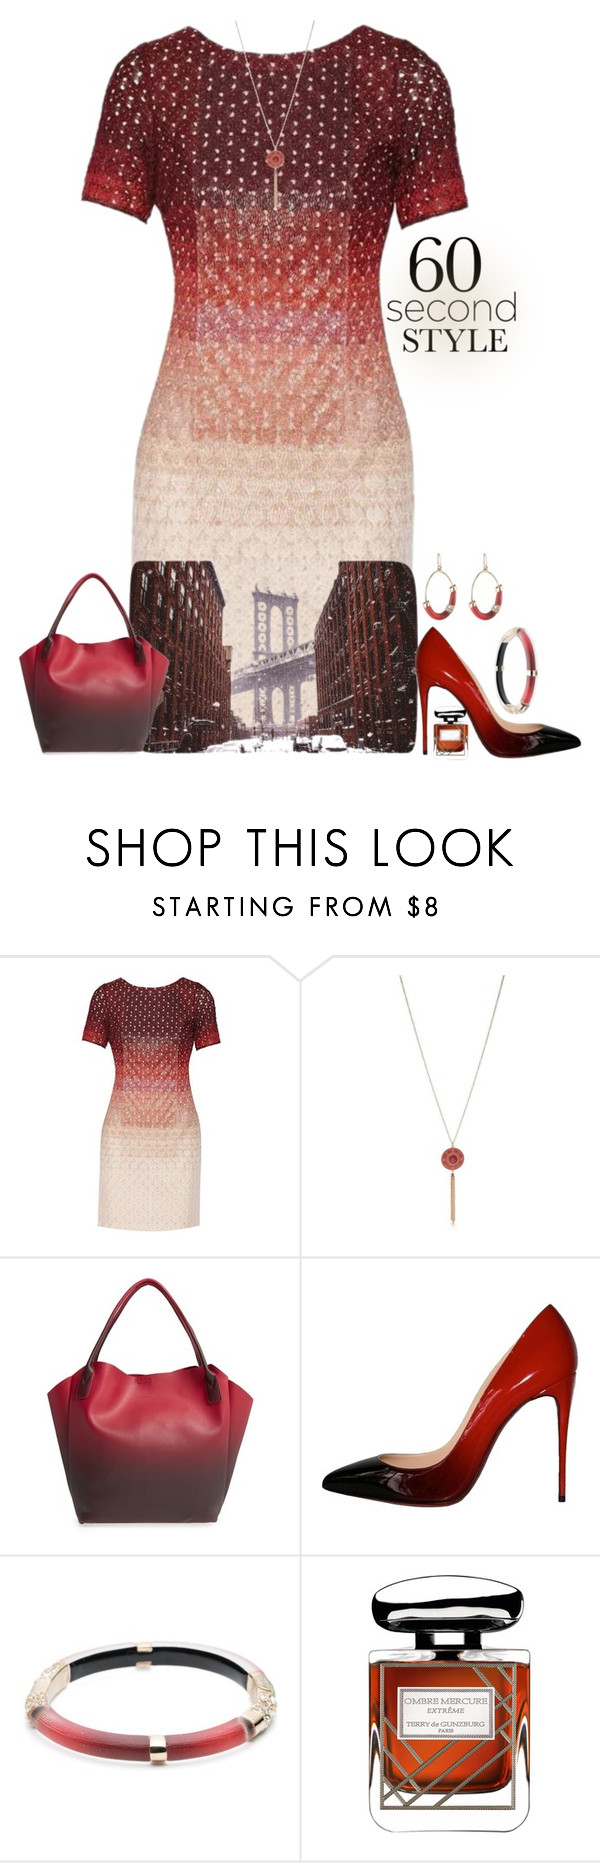 """60-Second Style: Ombre Effect"" by easy-dressing ❤ liked on Polyvore featuring Missoni, Kim Rogers, Pixie Mood, Christian Louboutin, Alexis Bittar, Terry de Gunzburg, ombre, polyvoreeditorial, polyvorecontest and 60secondstyle"